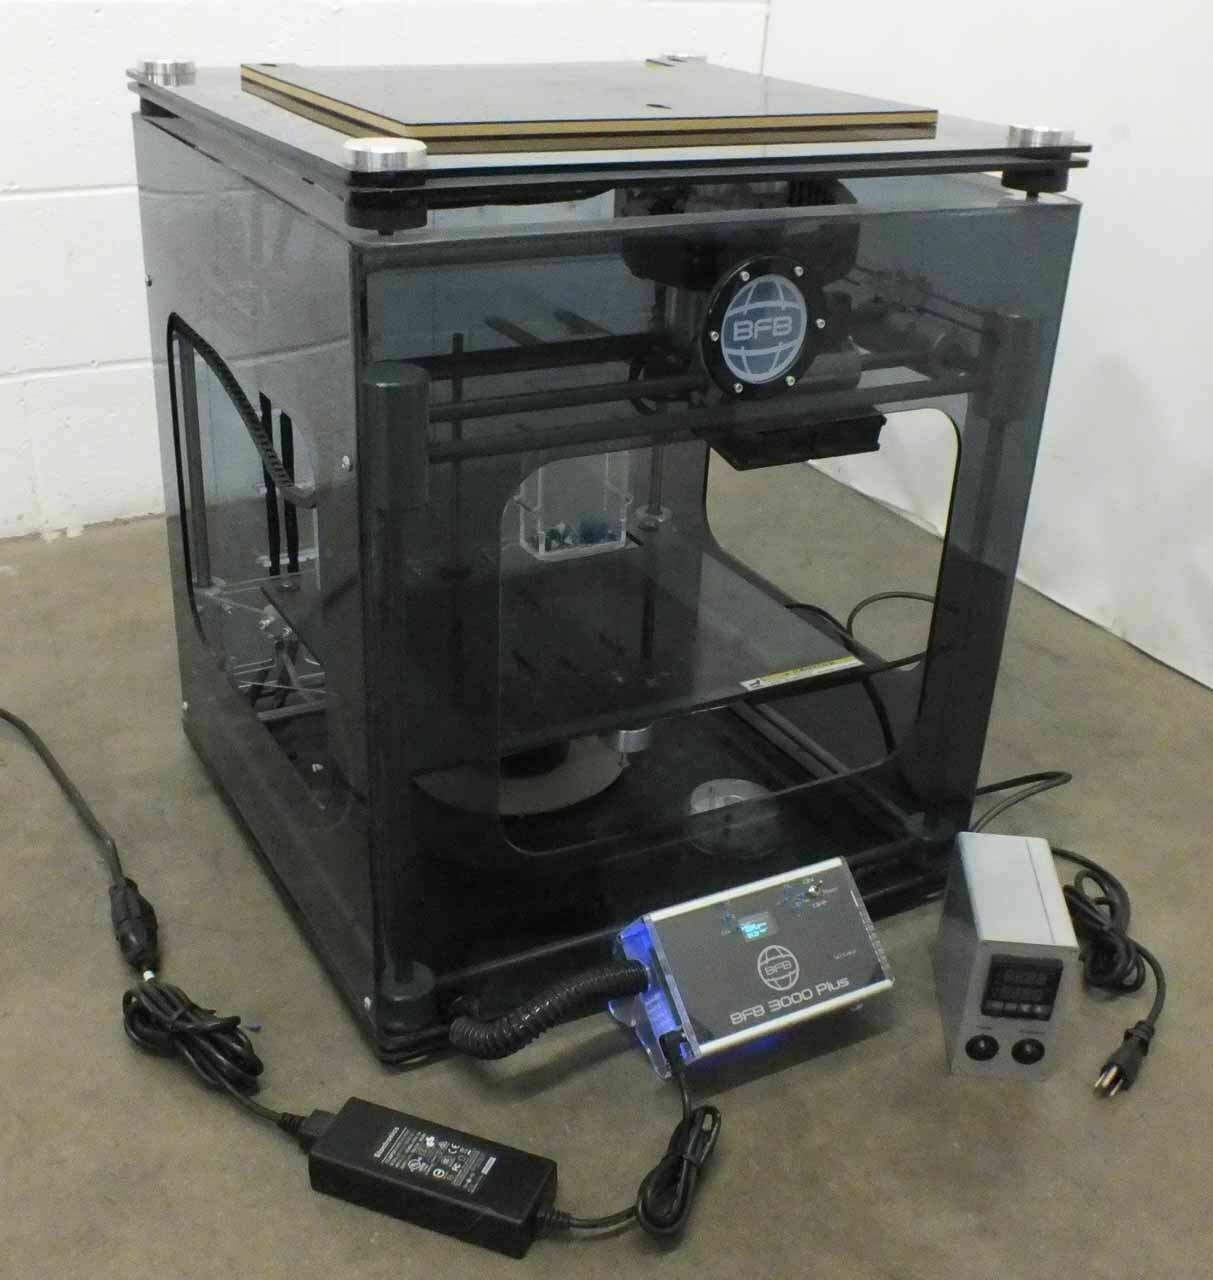 3D Systems 3D Printer with Operations Manual - Prints from SD Card BFB 3000 Plus